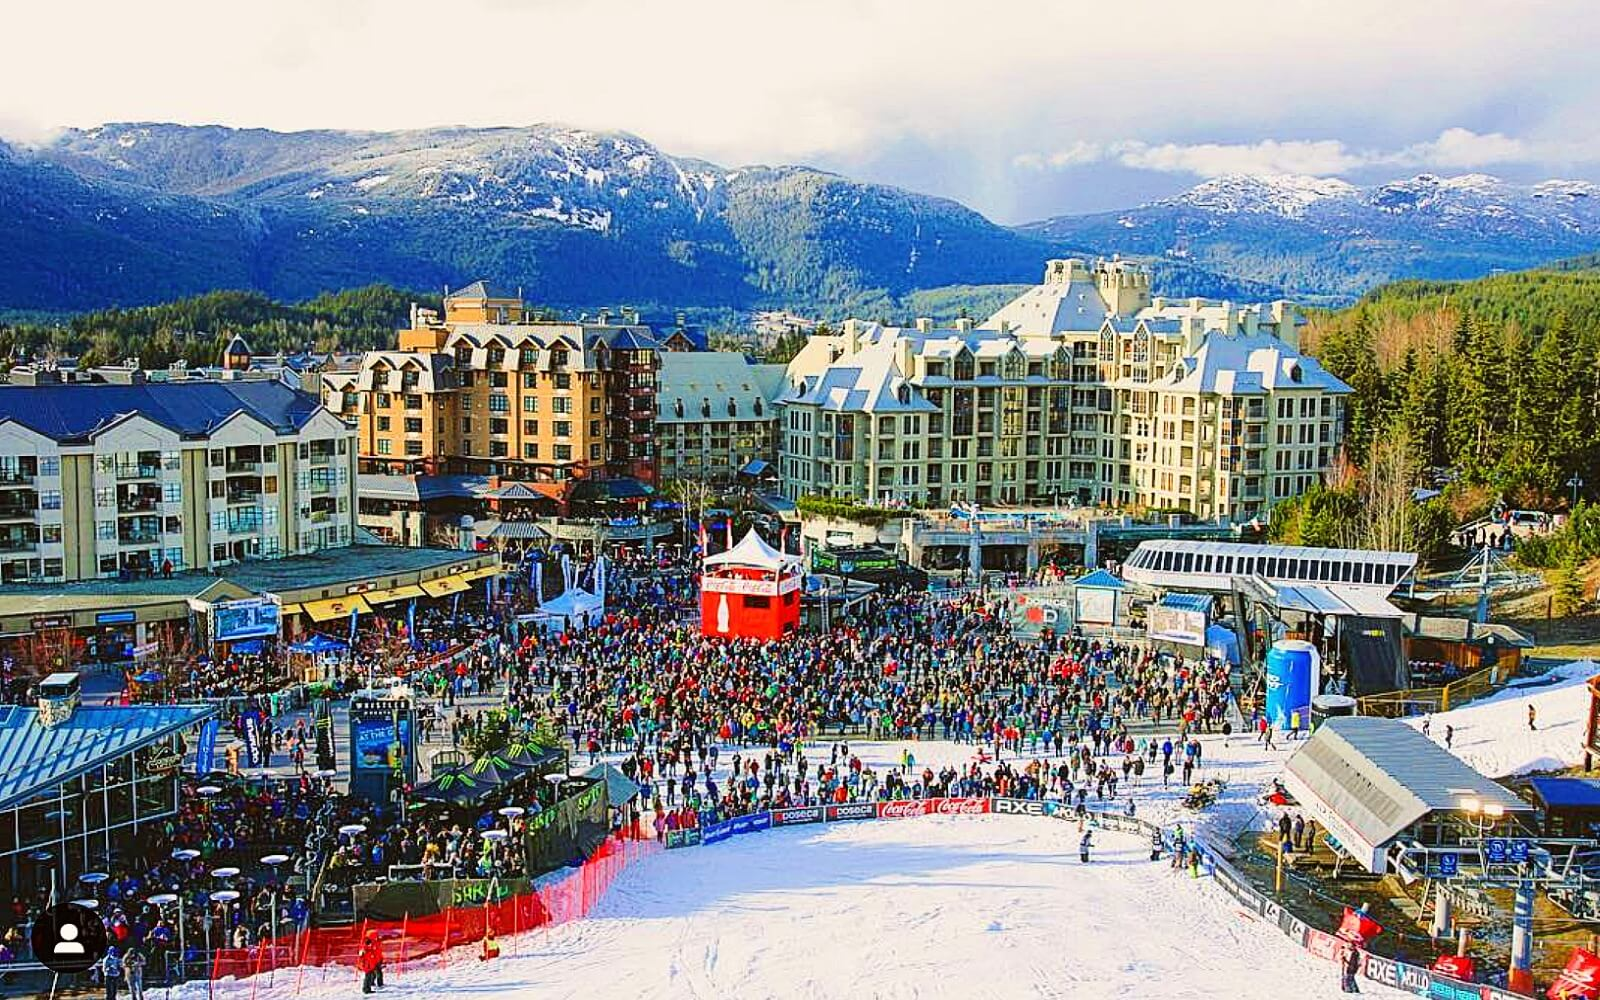 A crowd fill Whistler Village at the World Ski & Snowboard Festival